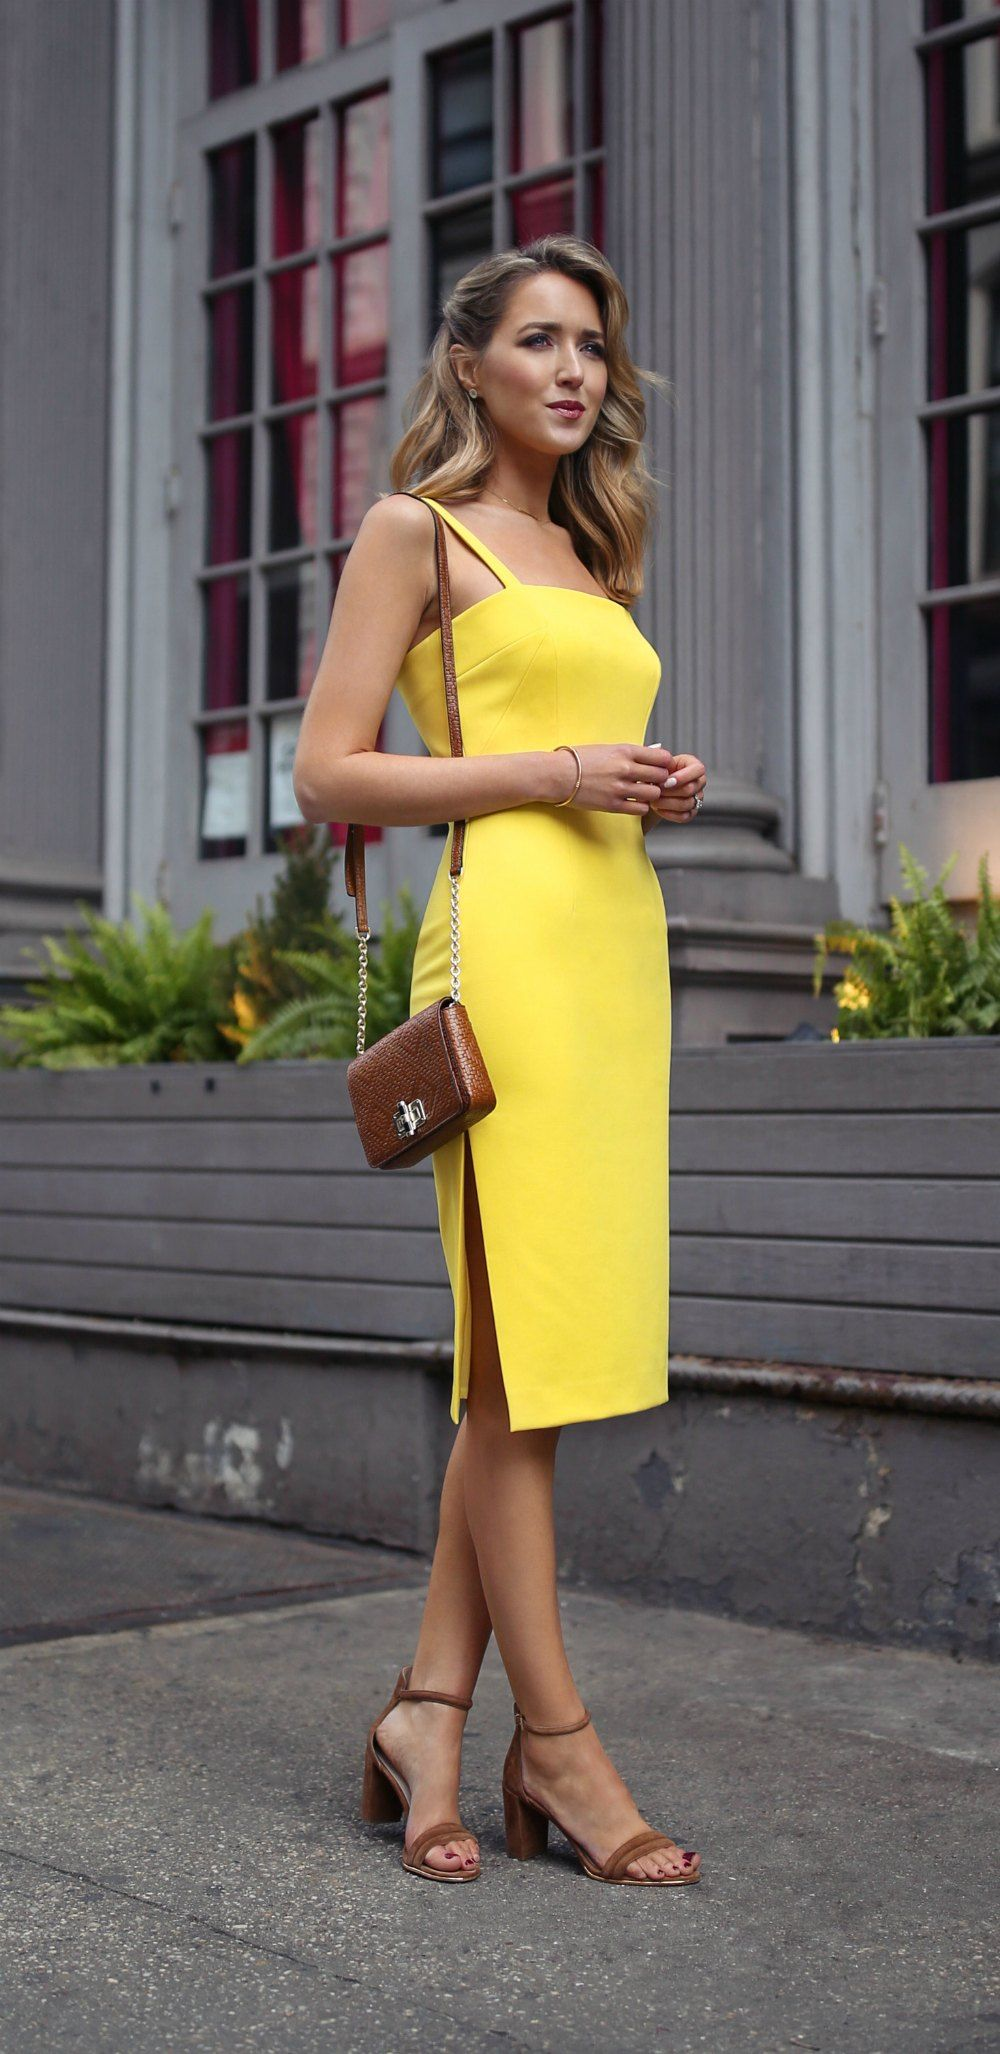 What To Wear To A Baby Shower Lemon Yellow Sheath Midi Dress With Thin Stra Wedding Guest Outfit Spring Wedding Party Dress Guest Spring Wedding Guest Dress [ 2054 x 1000 Pixel ]